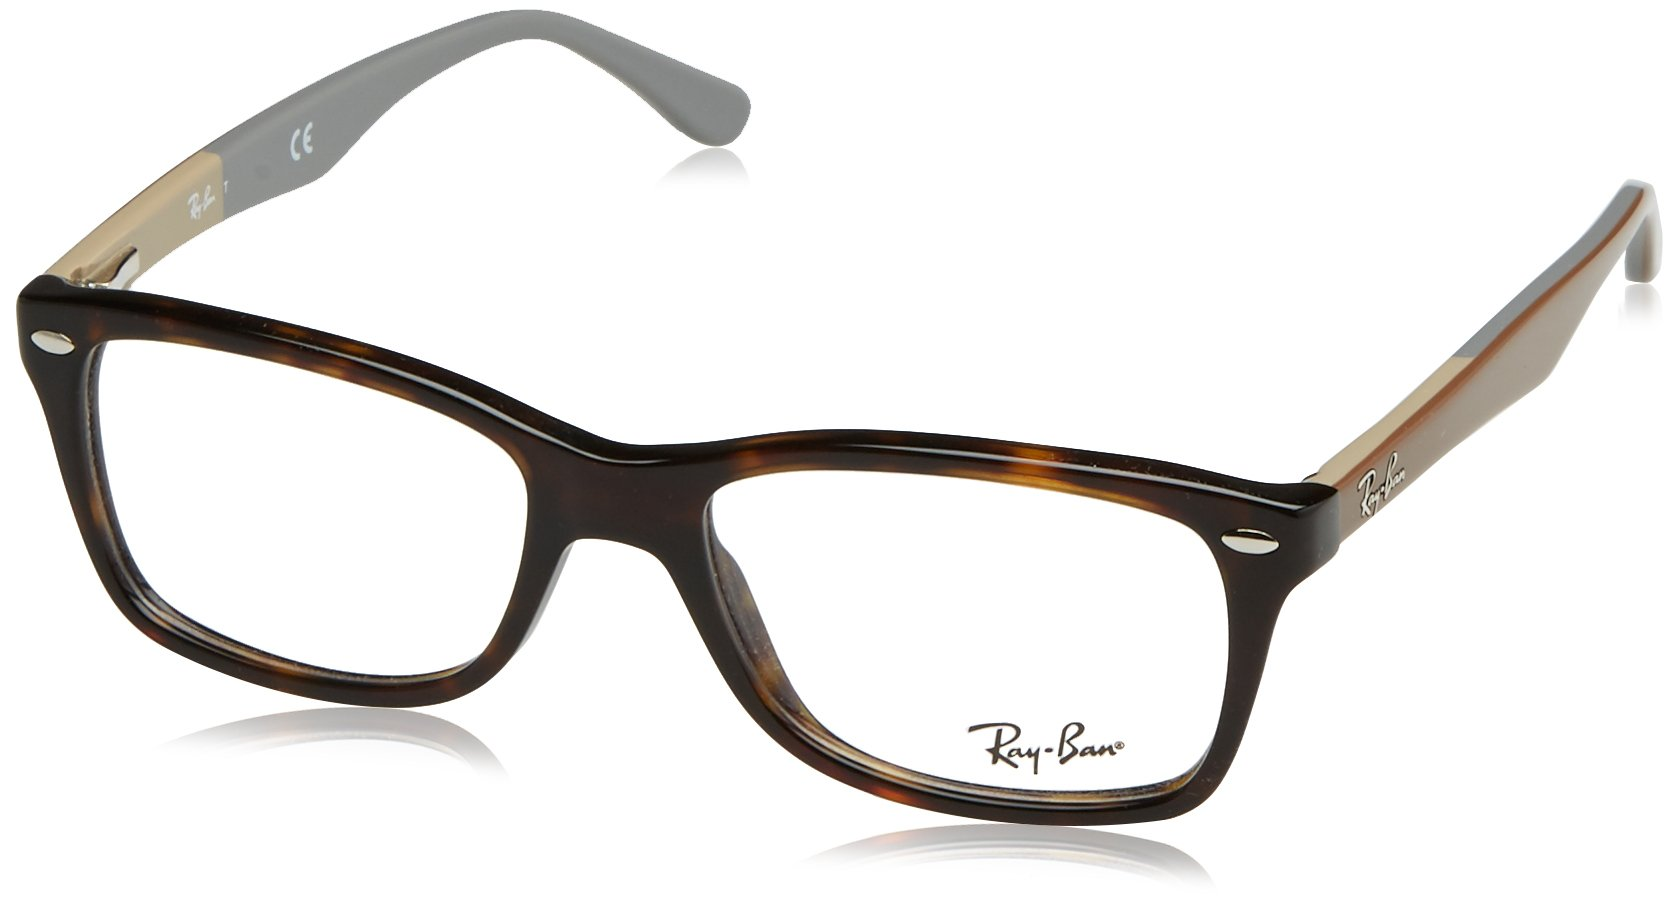 Ray-Ban Women's RX5228 Eyeglasses Sand Grey 55mm by Ray-Ban